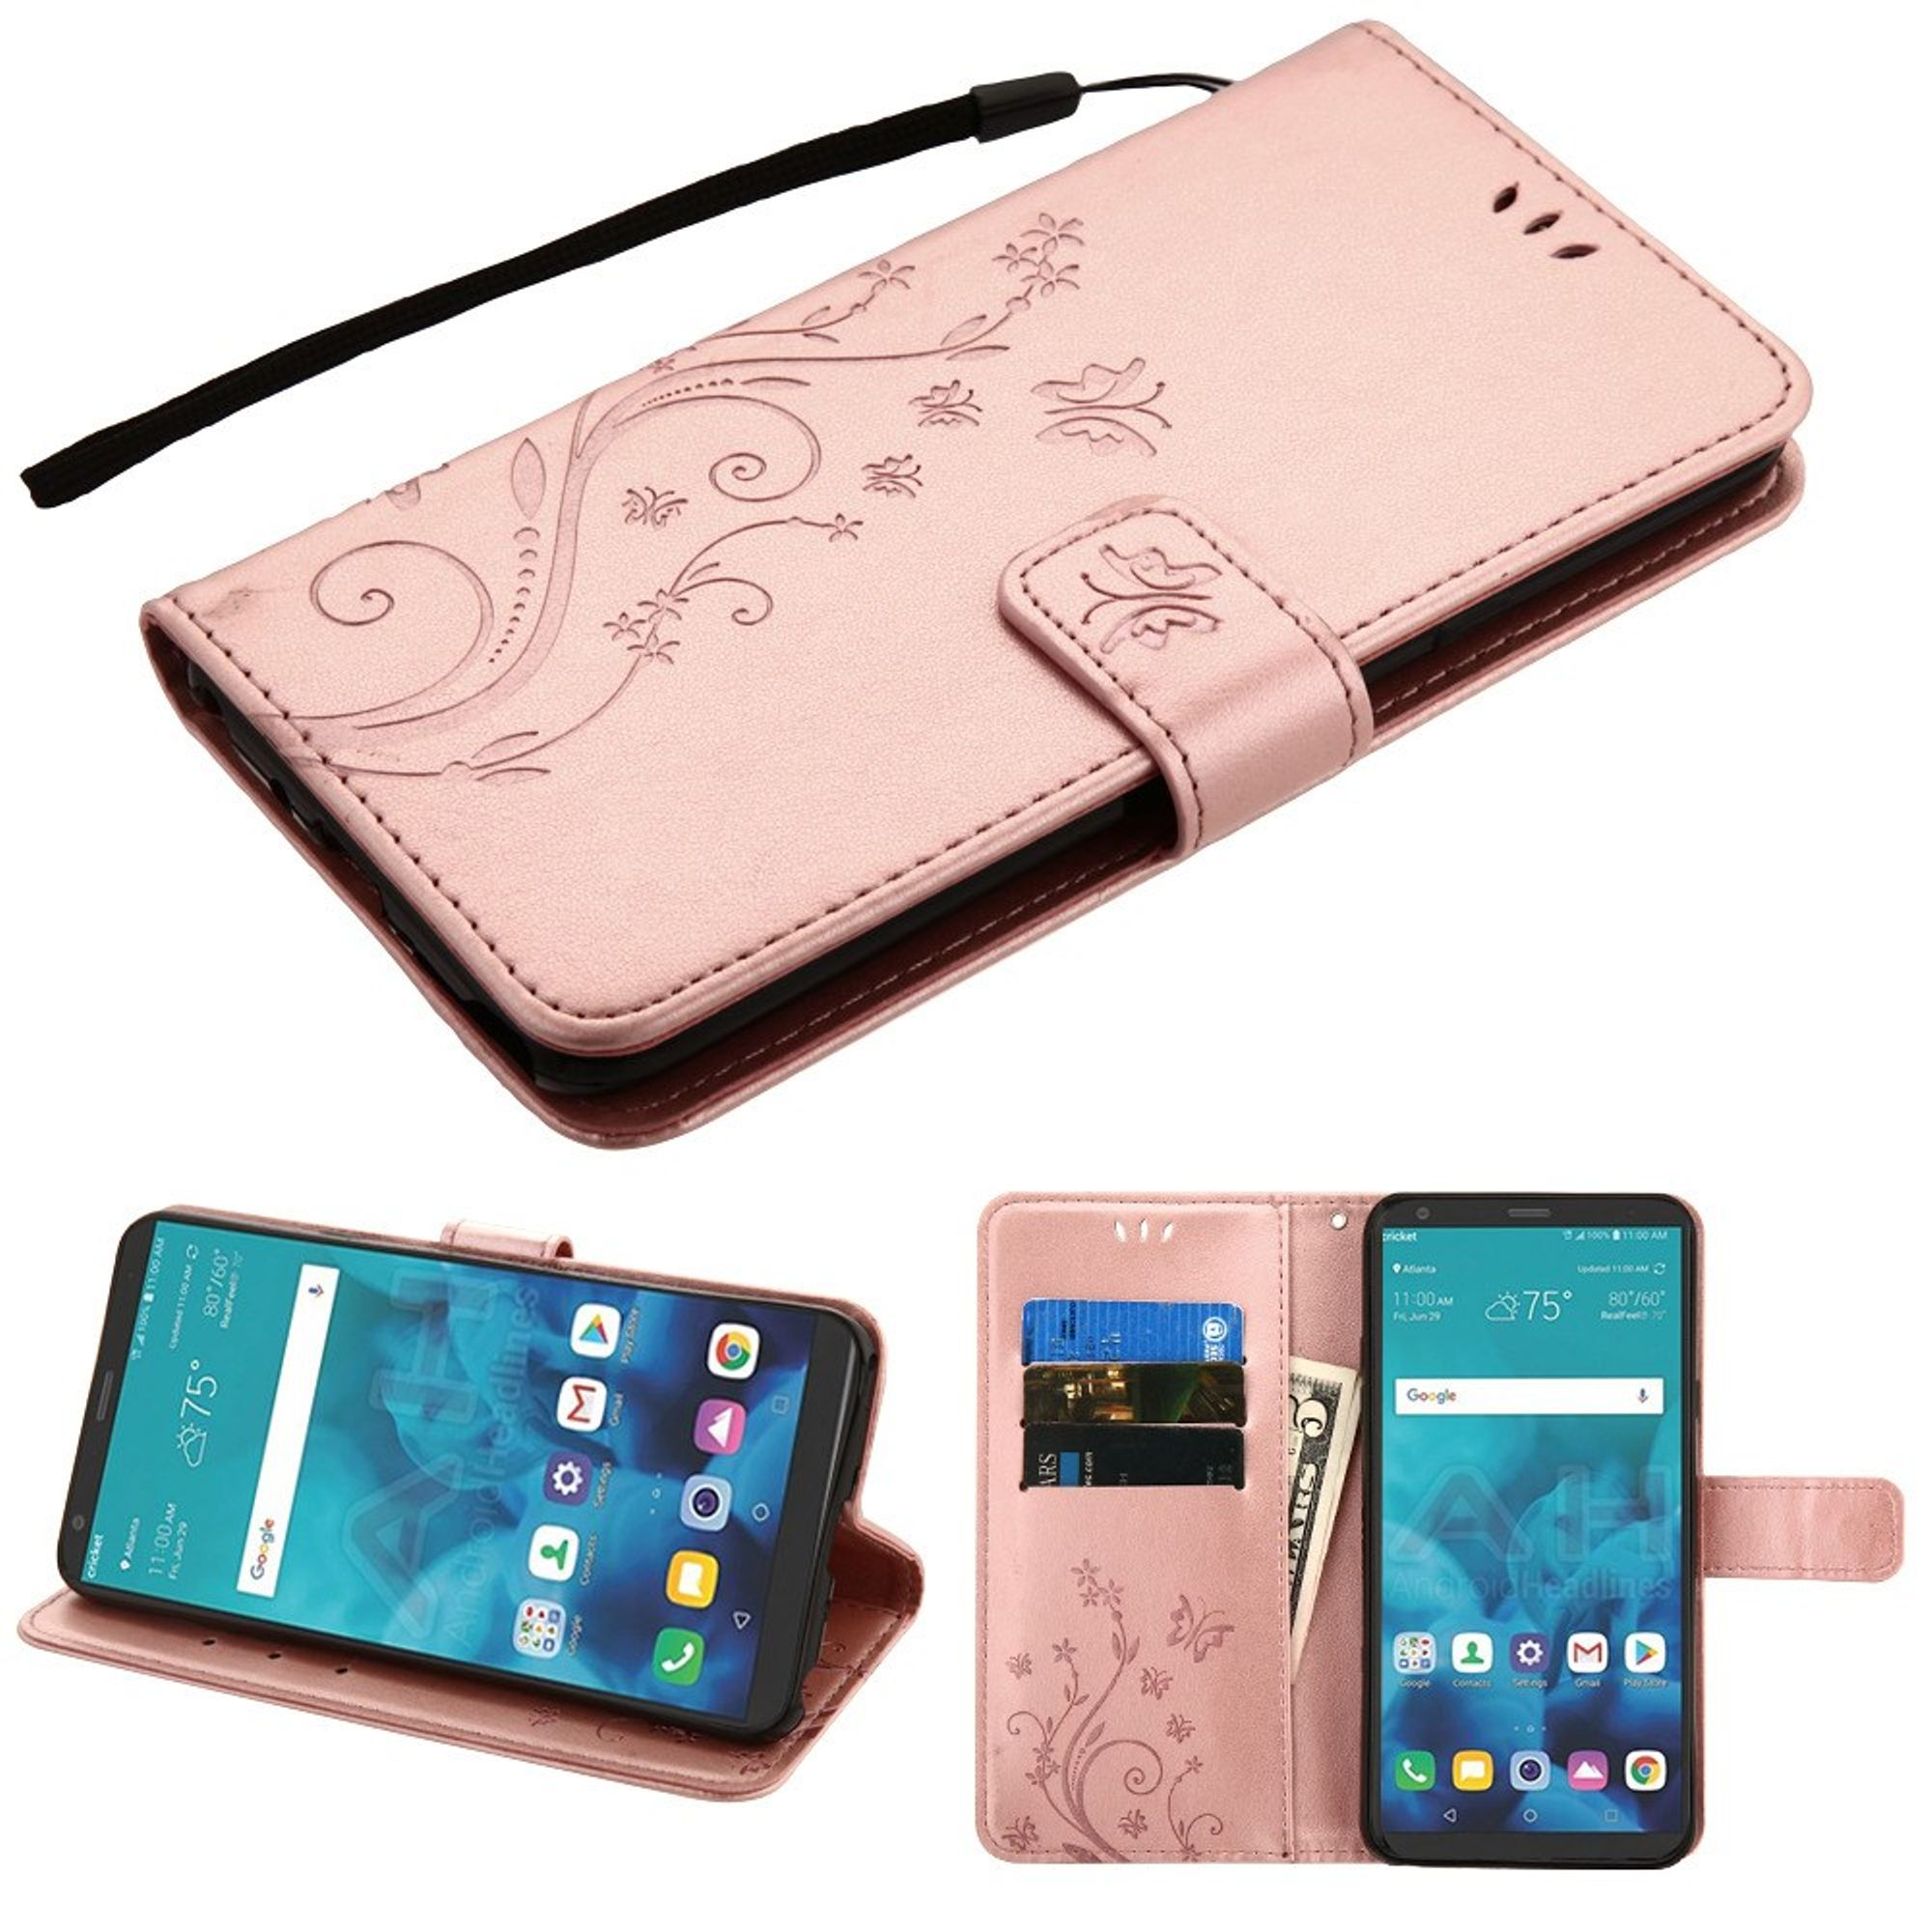 LG Stylo 4 Case, by Insten MyJacket Butterfly Folio Flip Leather Case Cover Lanyard w/Stand/[Card Slot] Wallet Flap Pouch For LG Stylo 4